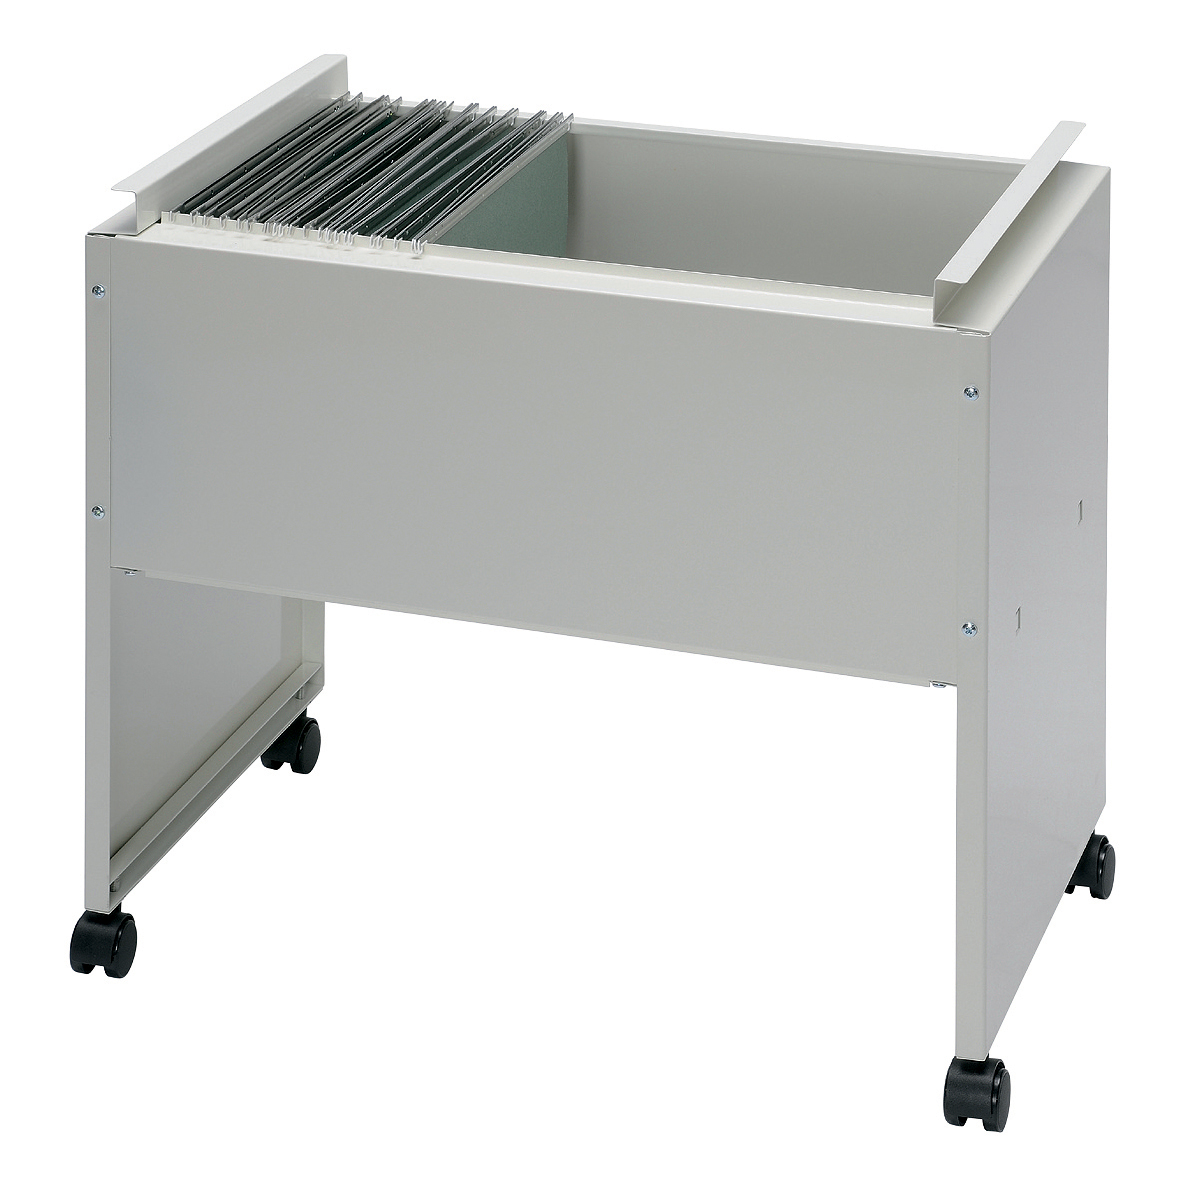 Stacking Chair Trolleys Universal Filing Trolley Steel Capacity 120 A4 or Foolscap Susp Files W650xD420xH580mm Grey